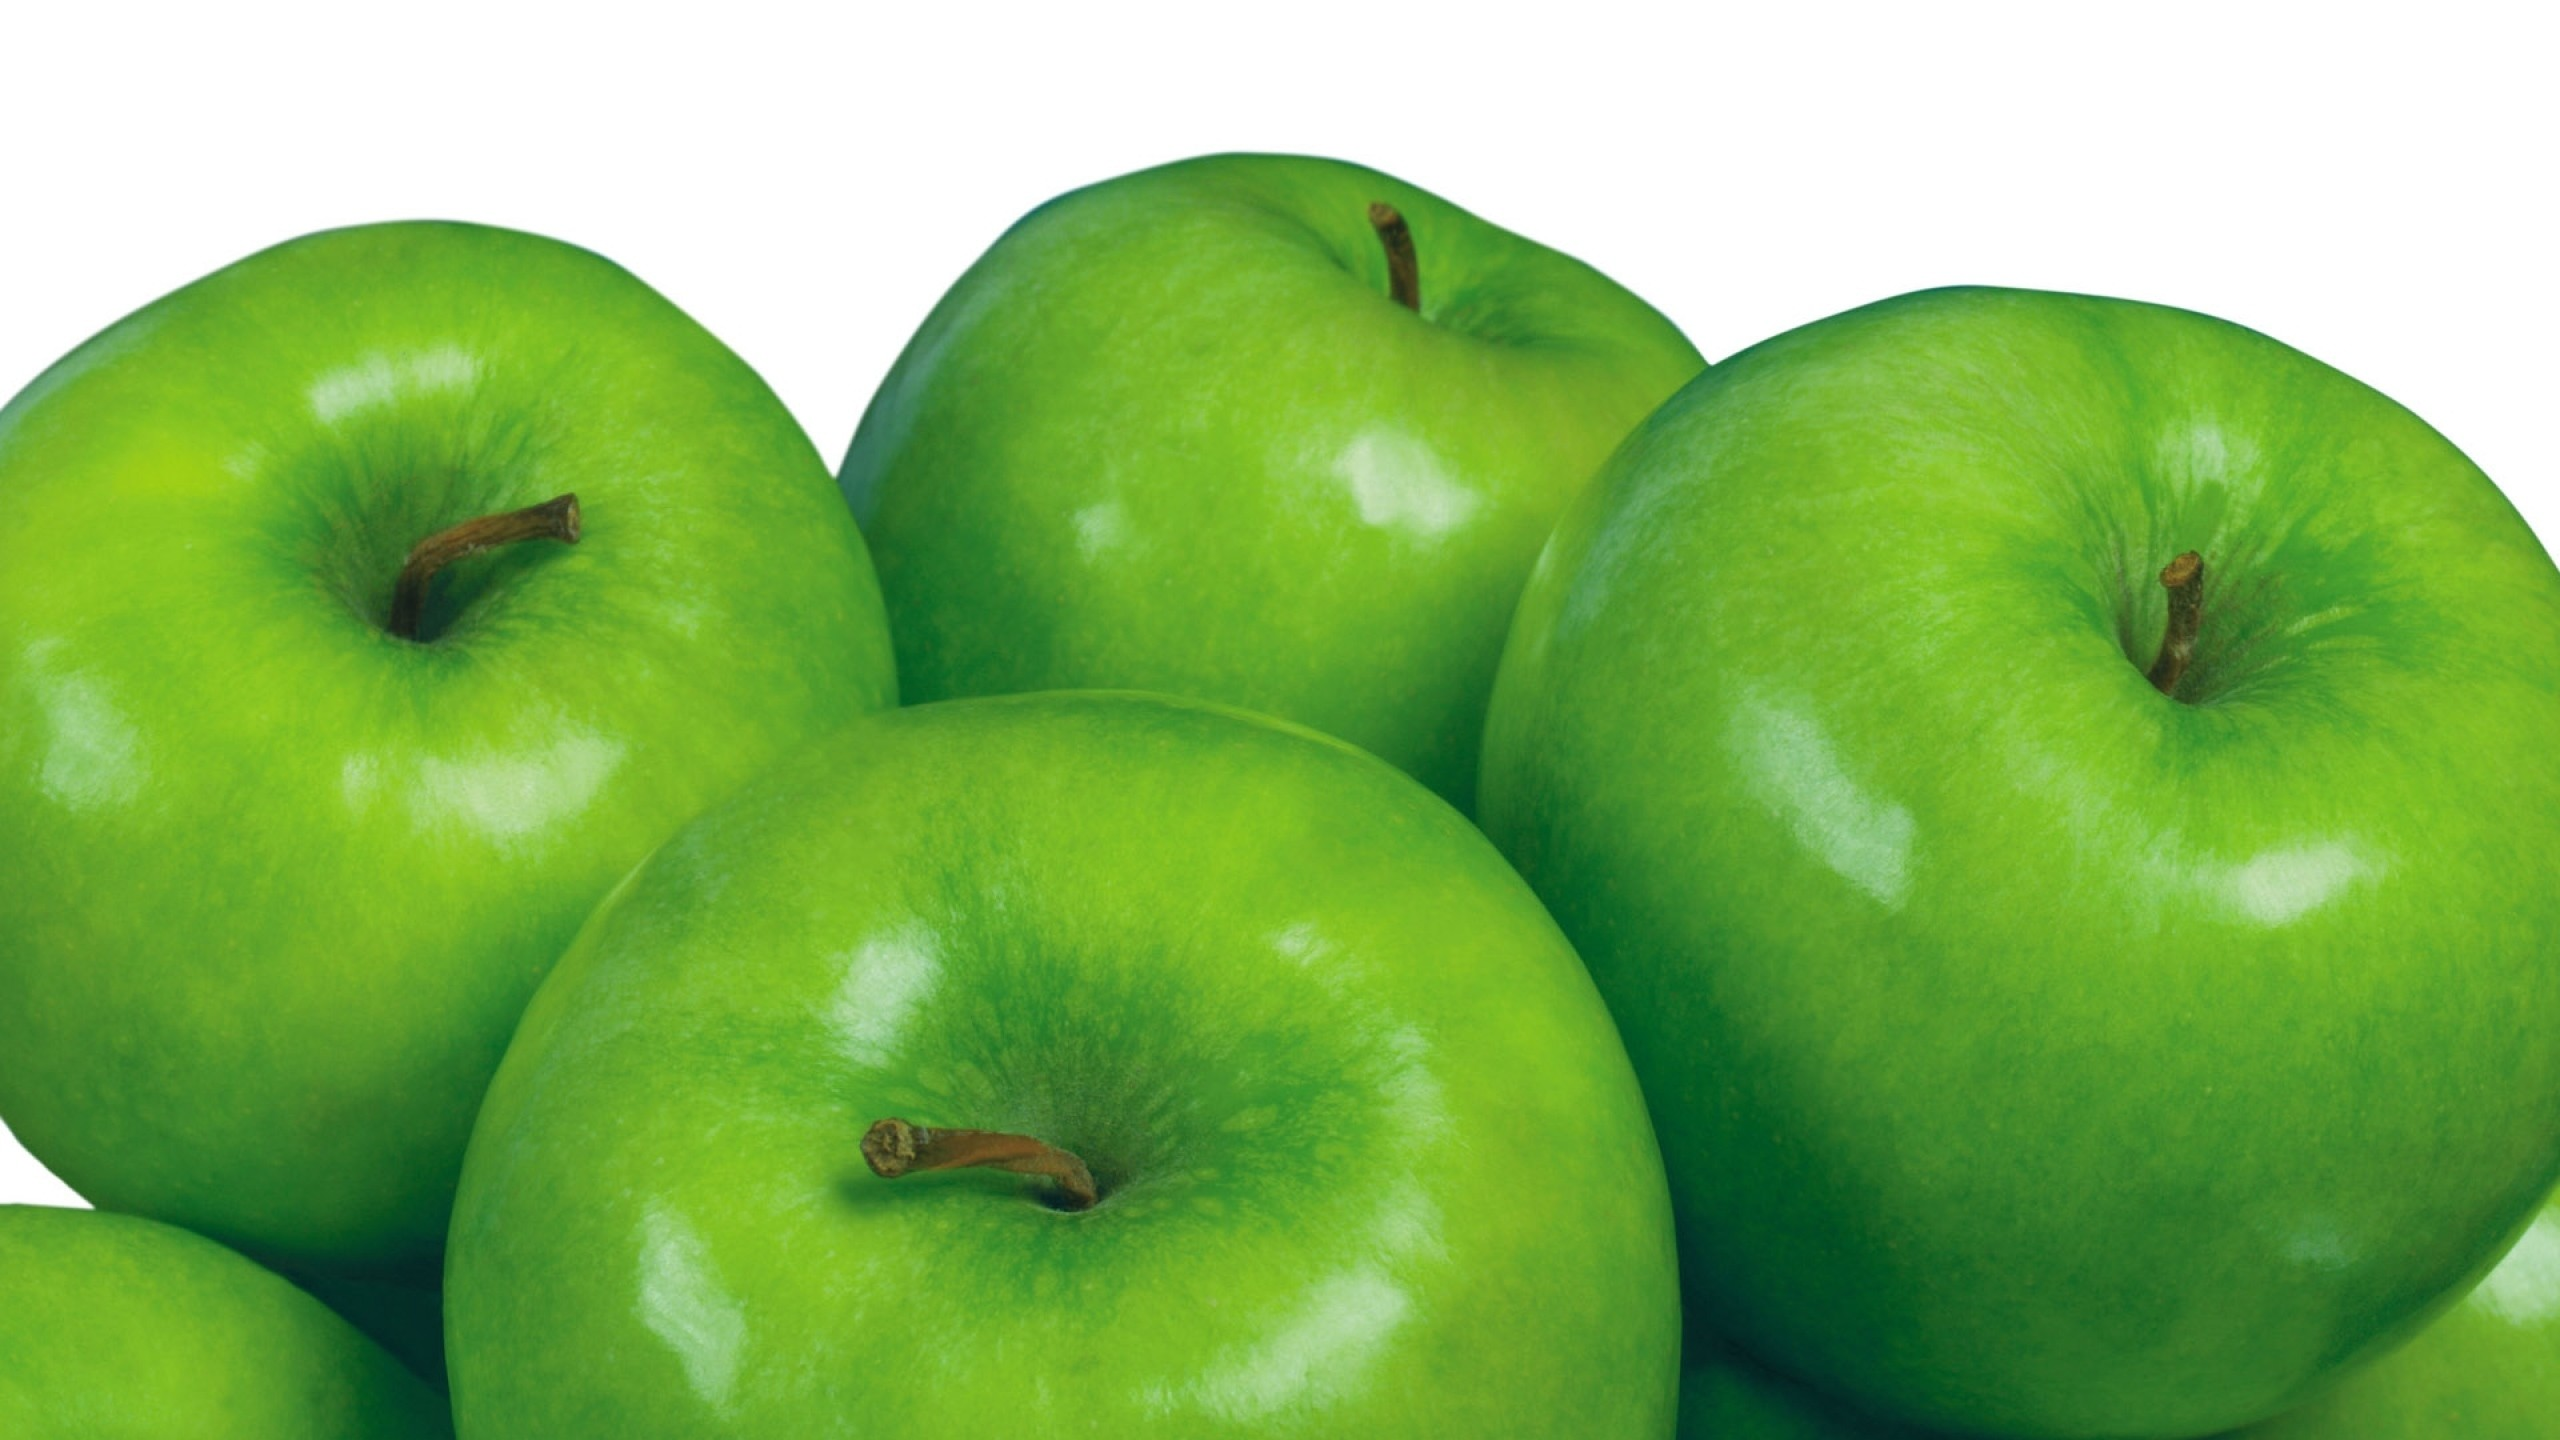 2560x1440  Wallpaper green apples, ripe, healthy, diet